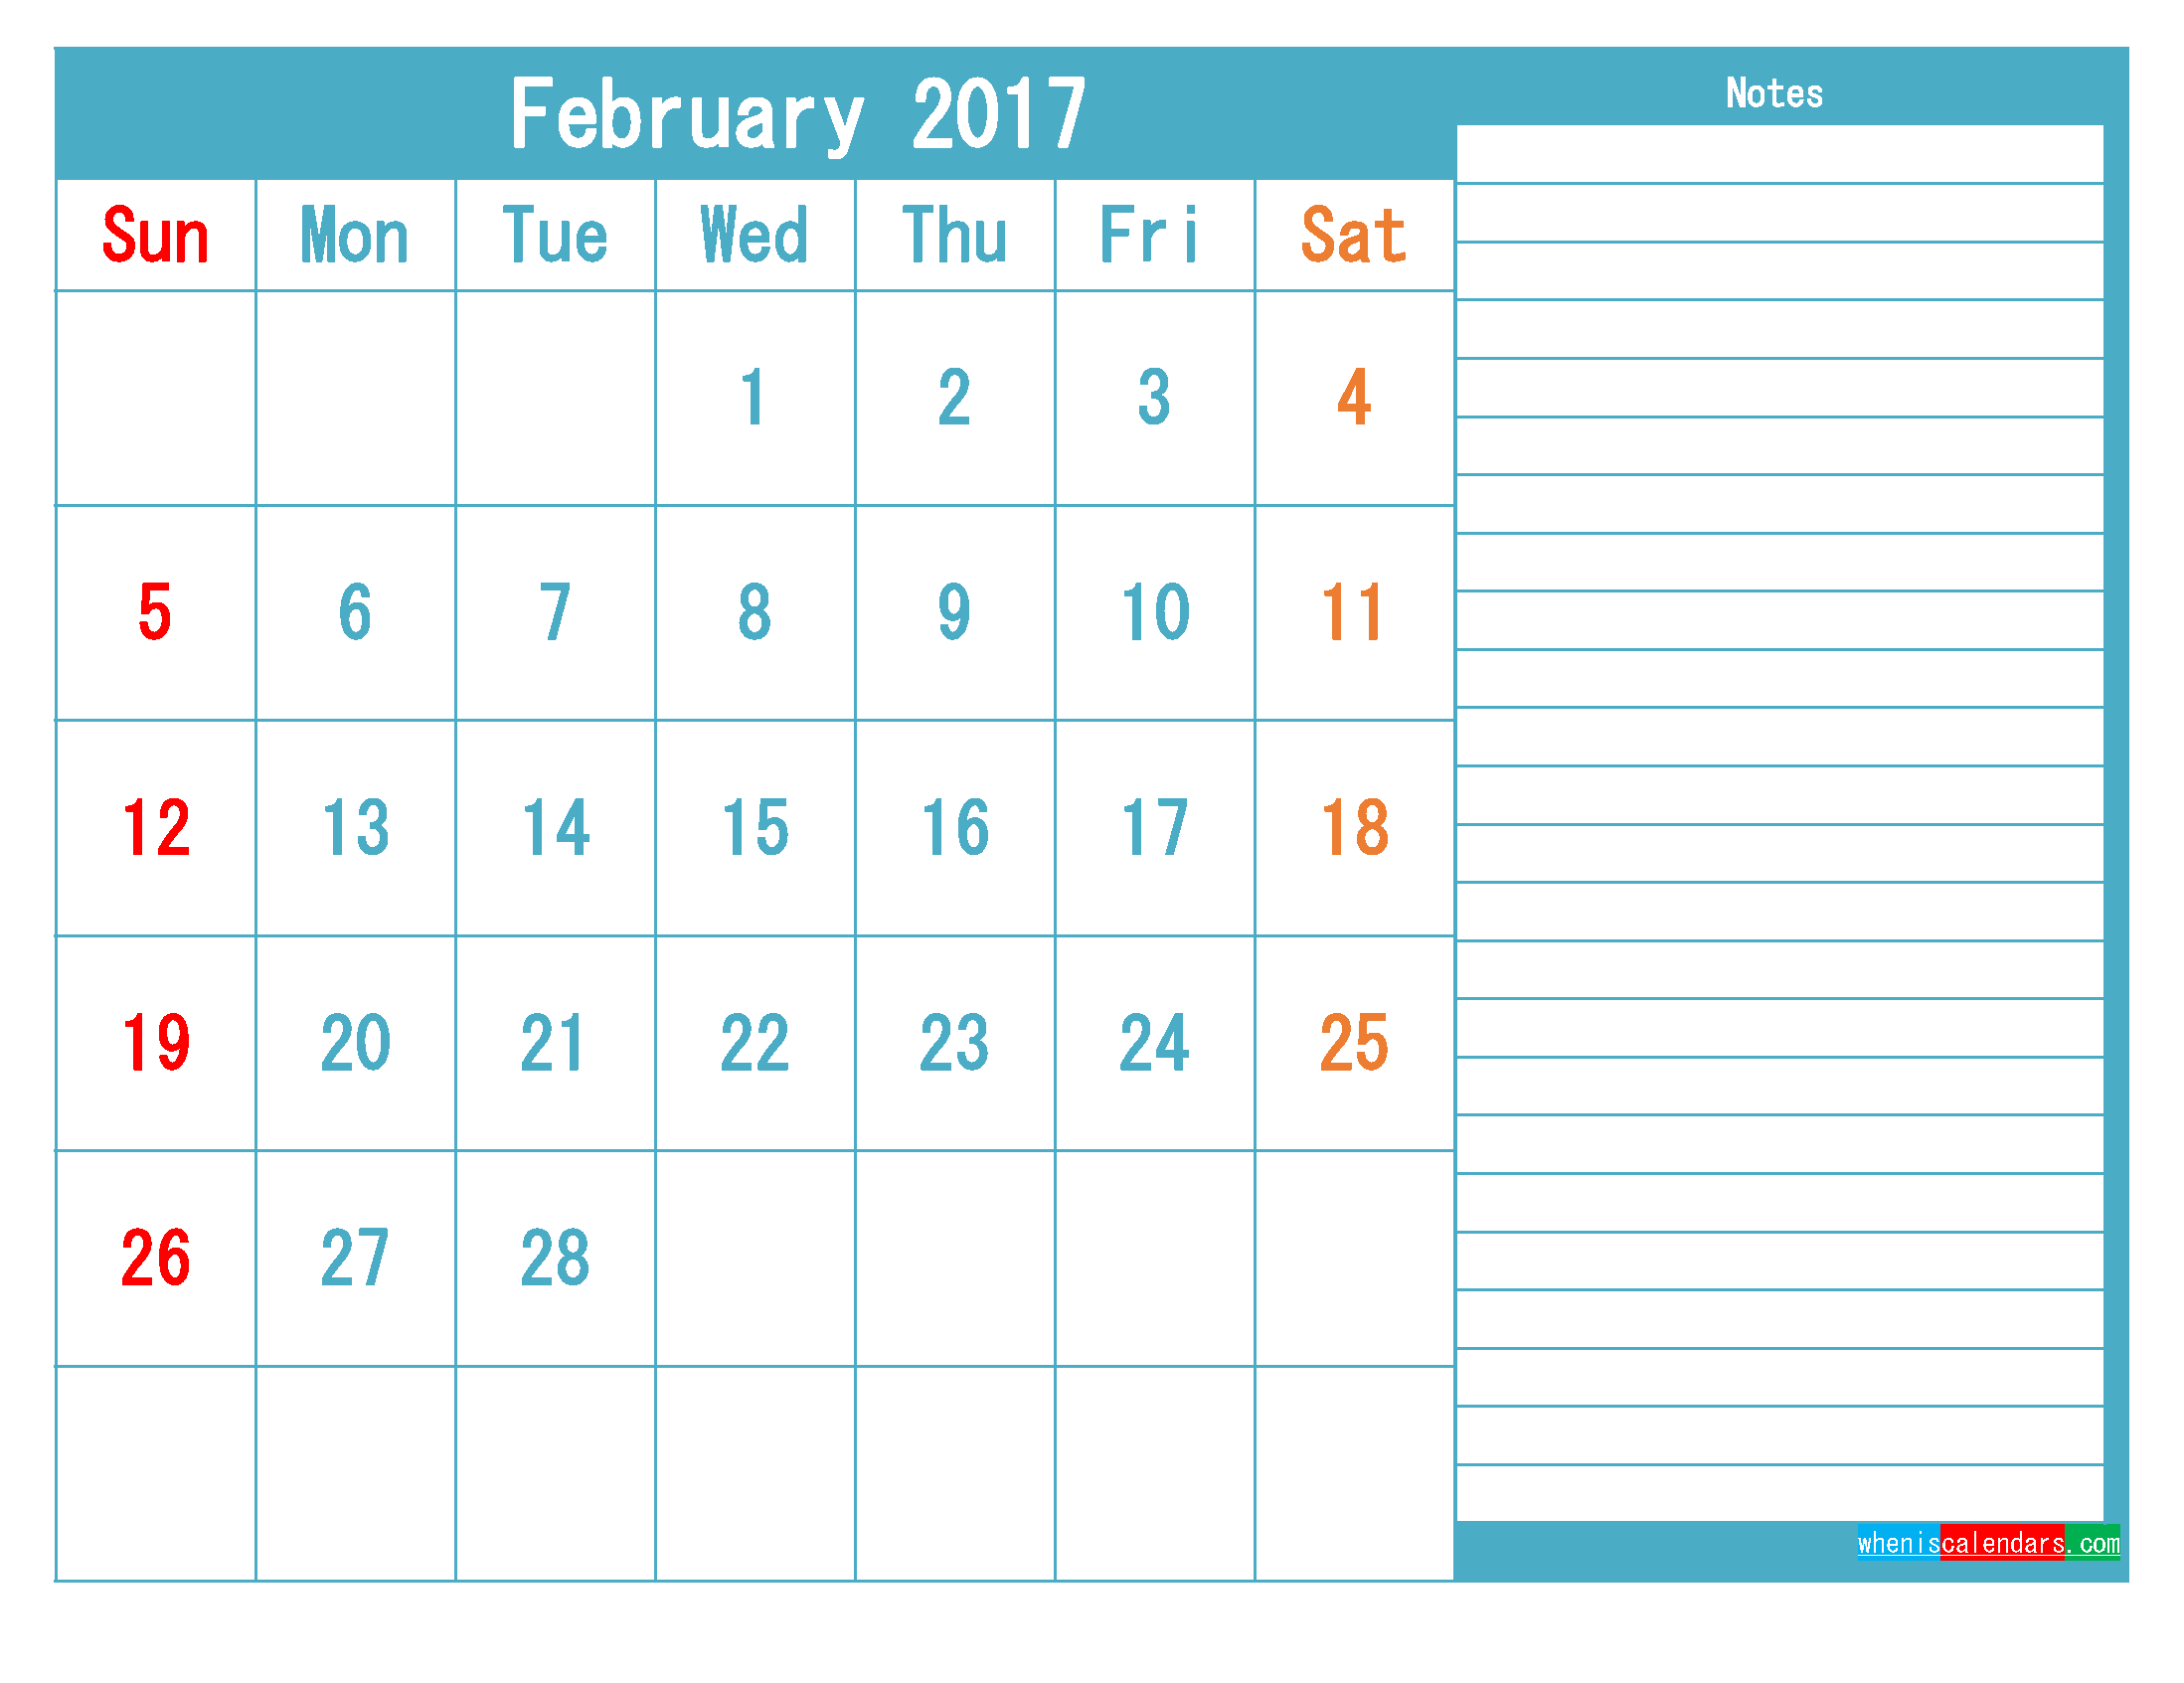 February 2017 Printable Calendar Templates PDF and Image